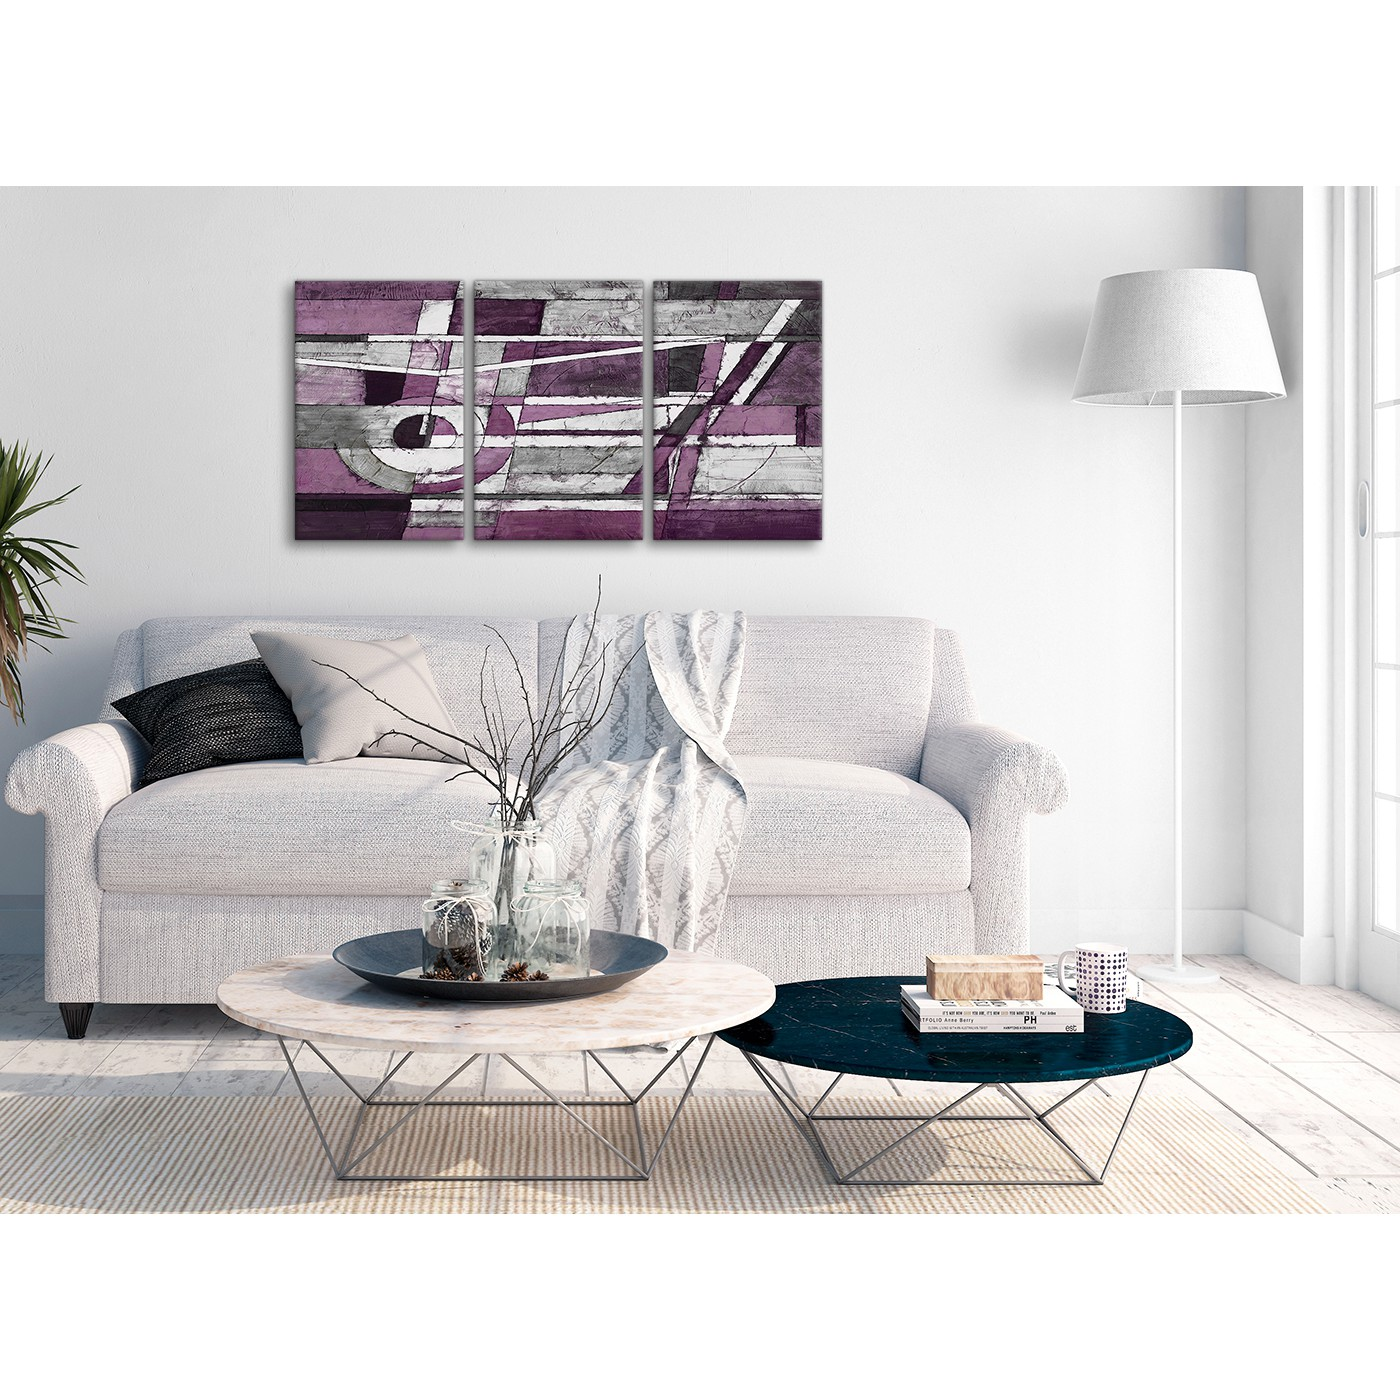 3 Panel Aubergine Grey White Painting Dining Room Canvas